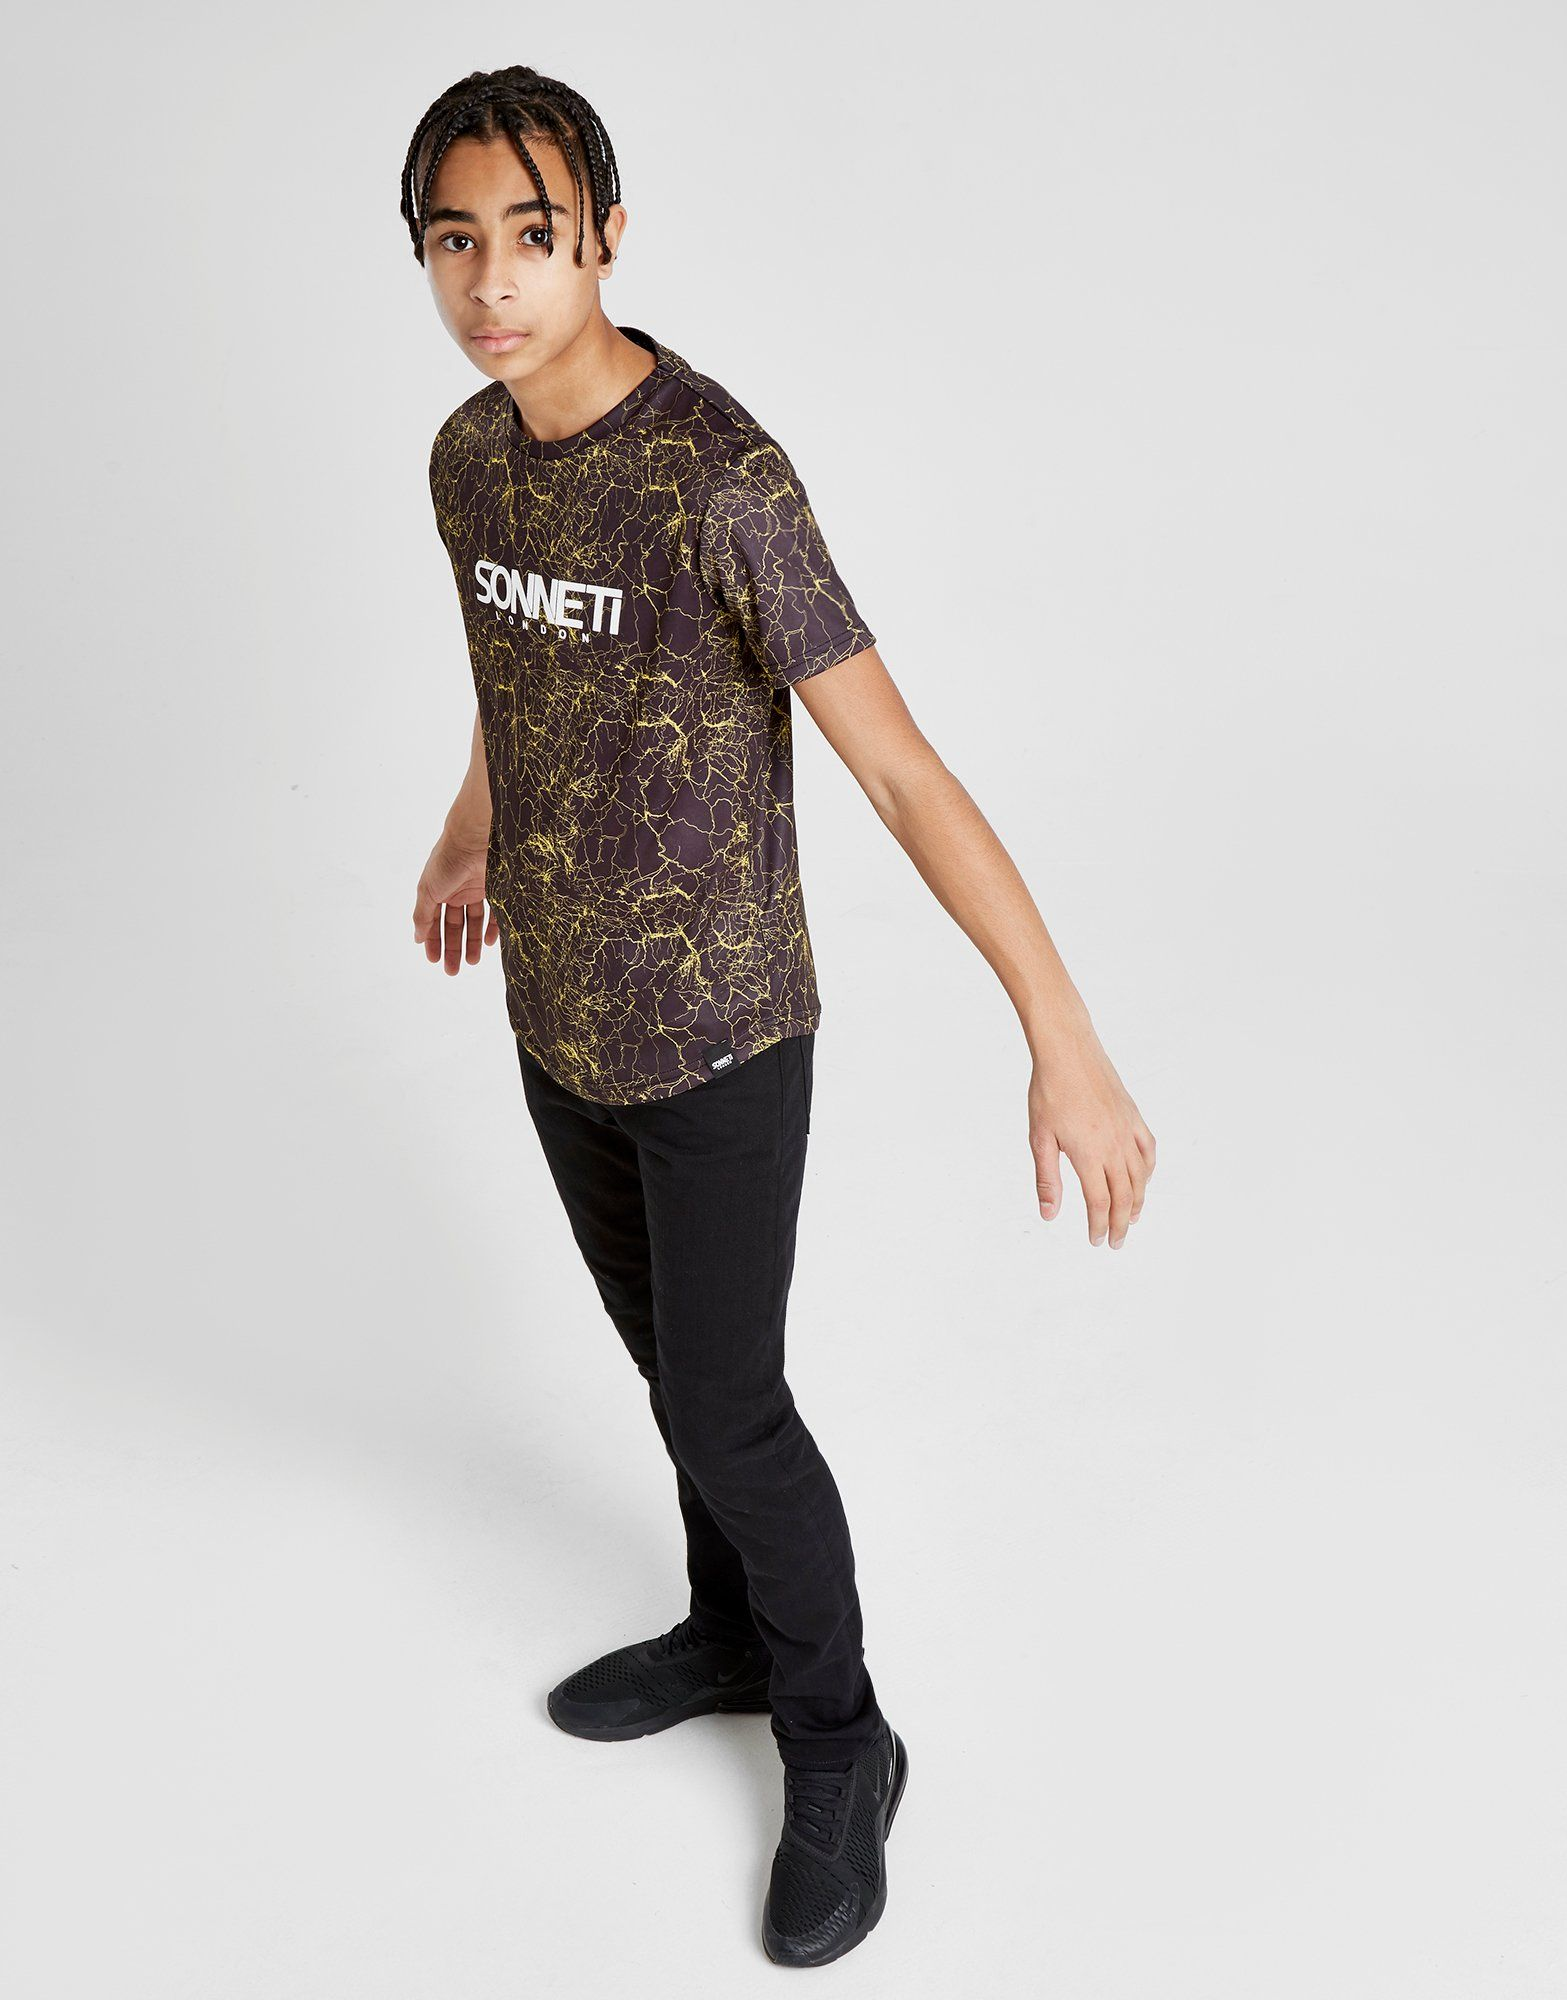 Sonneti Mapped T-Shirt Junior